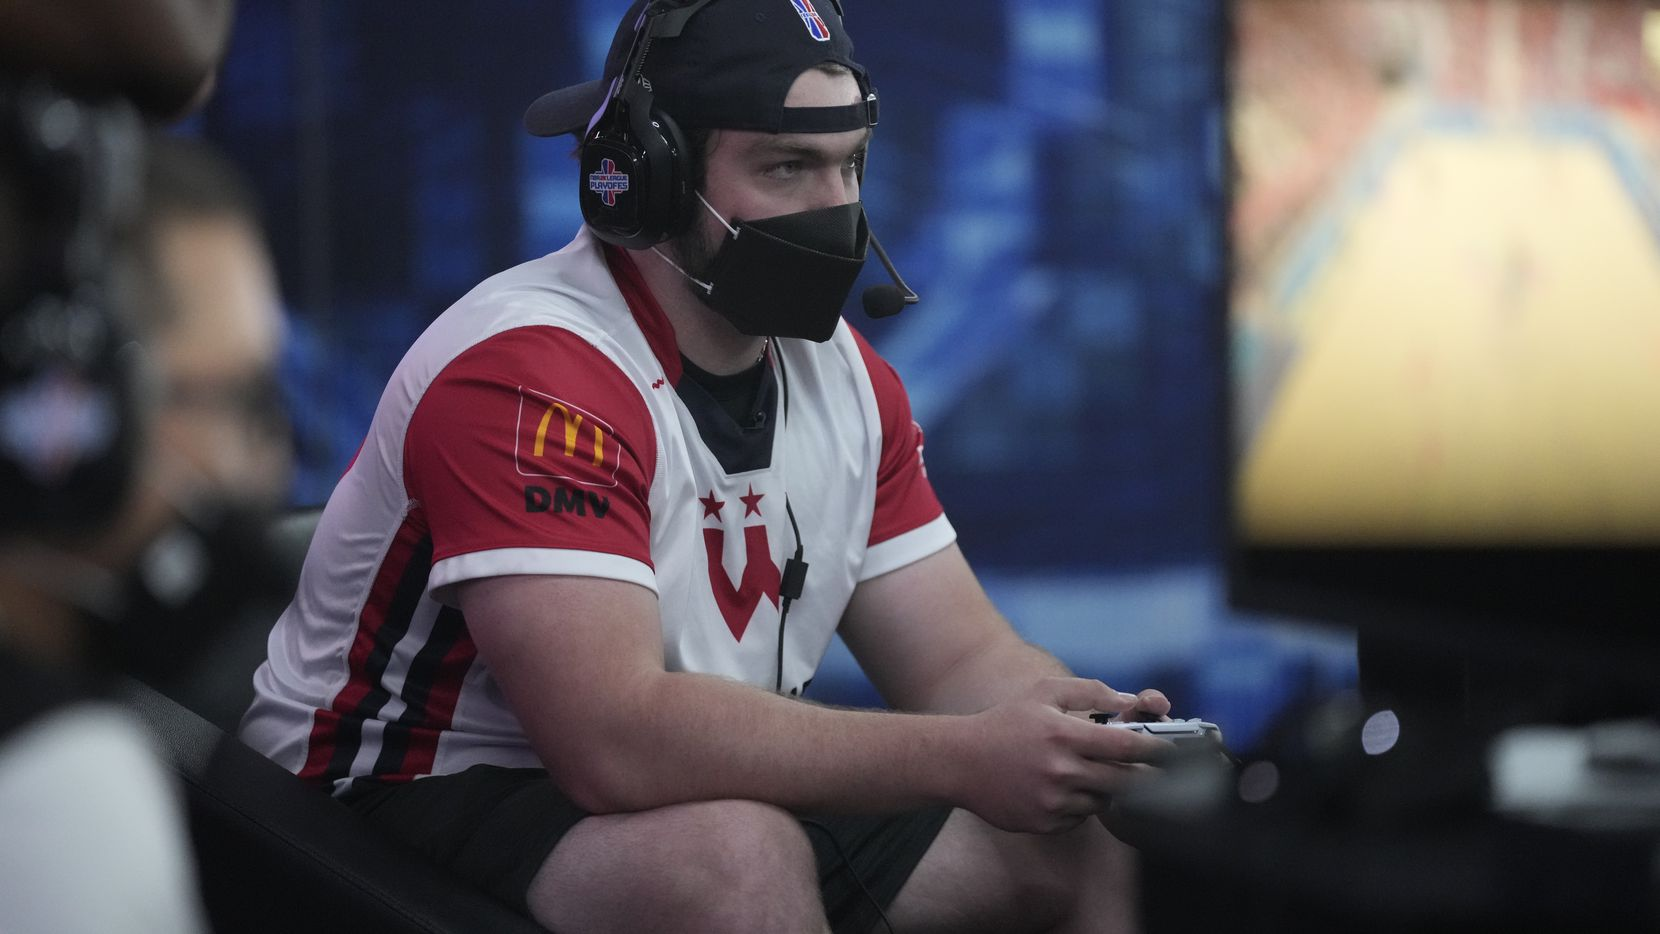 """Ryan """"DayFri"""" Conger during the semifinals of the 2021 NBA 2K League Playoffs on August 28, 2021 in Dallas, Texas at the Mavs Gaming Hub."""